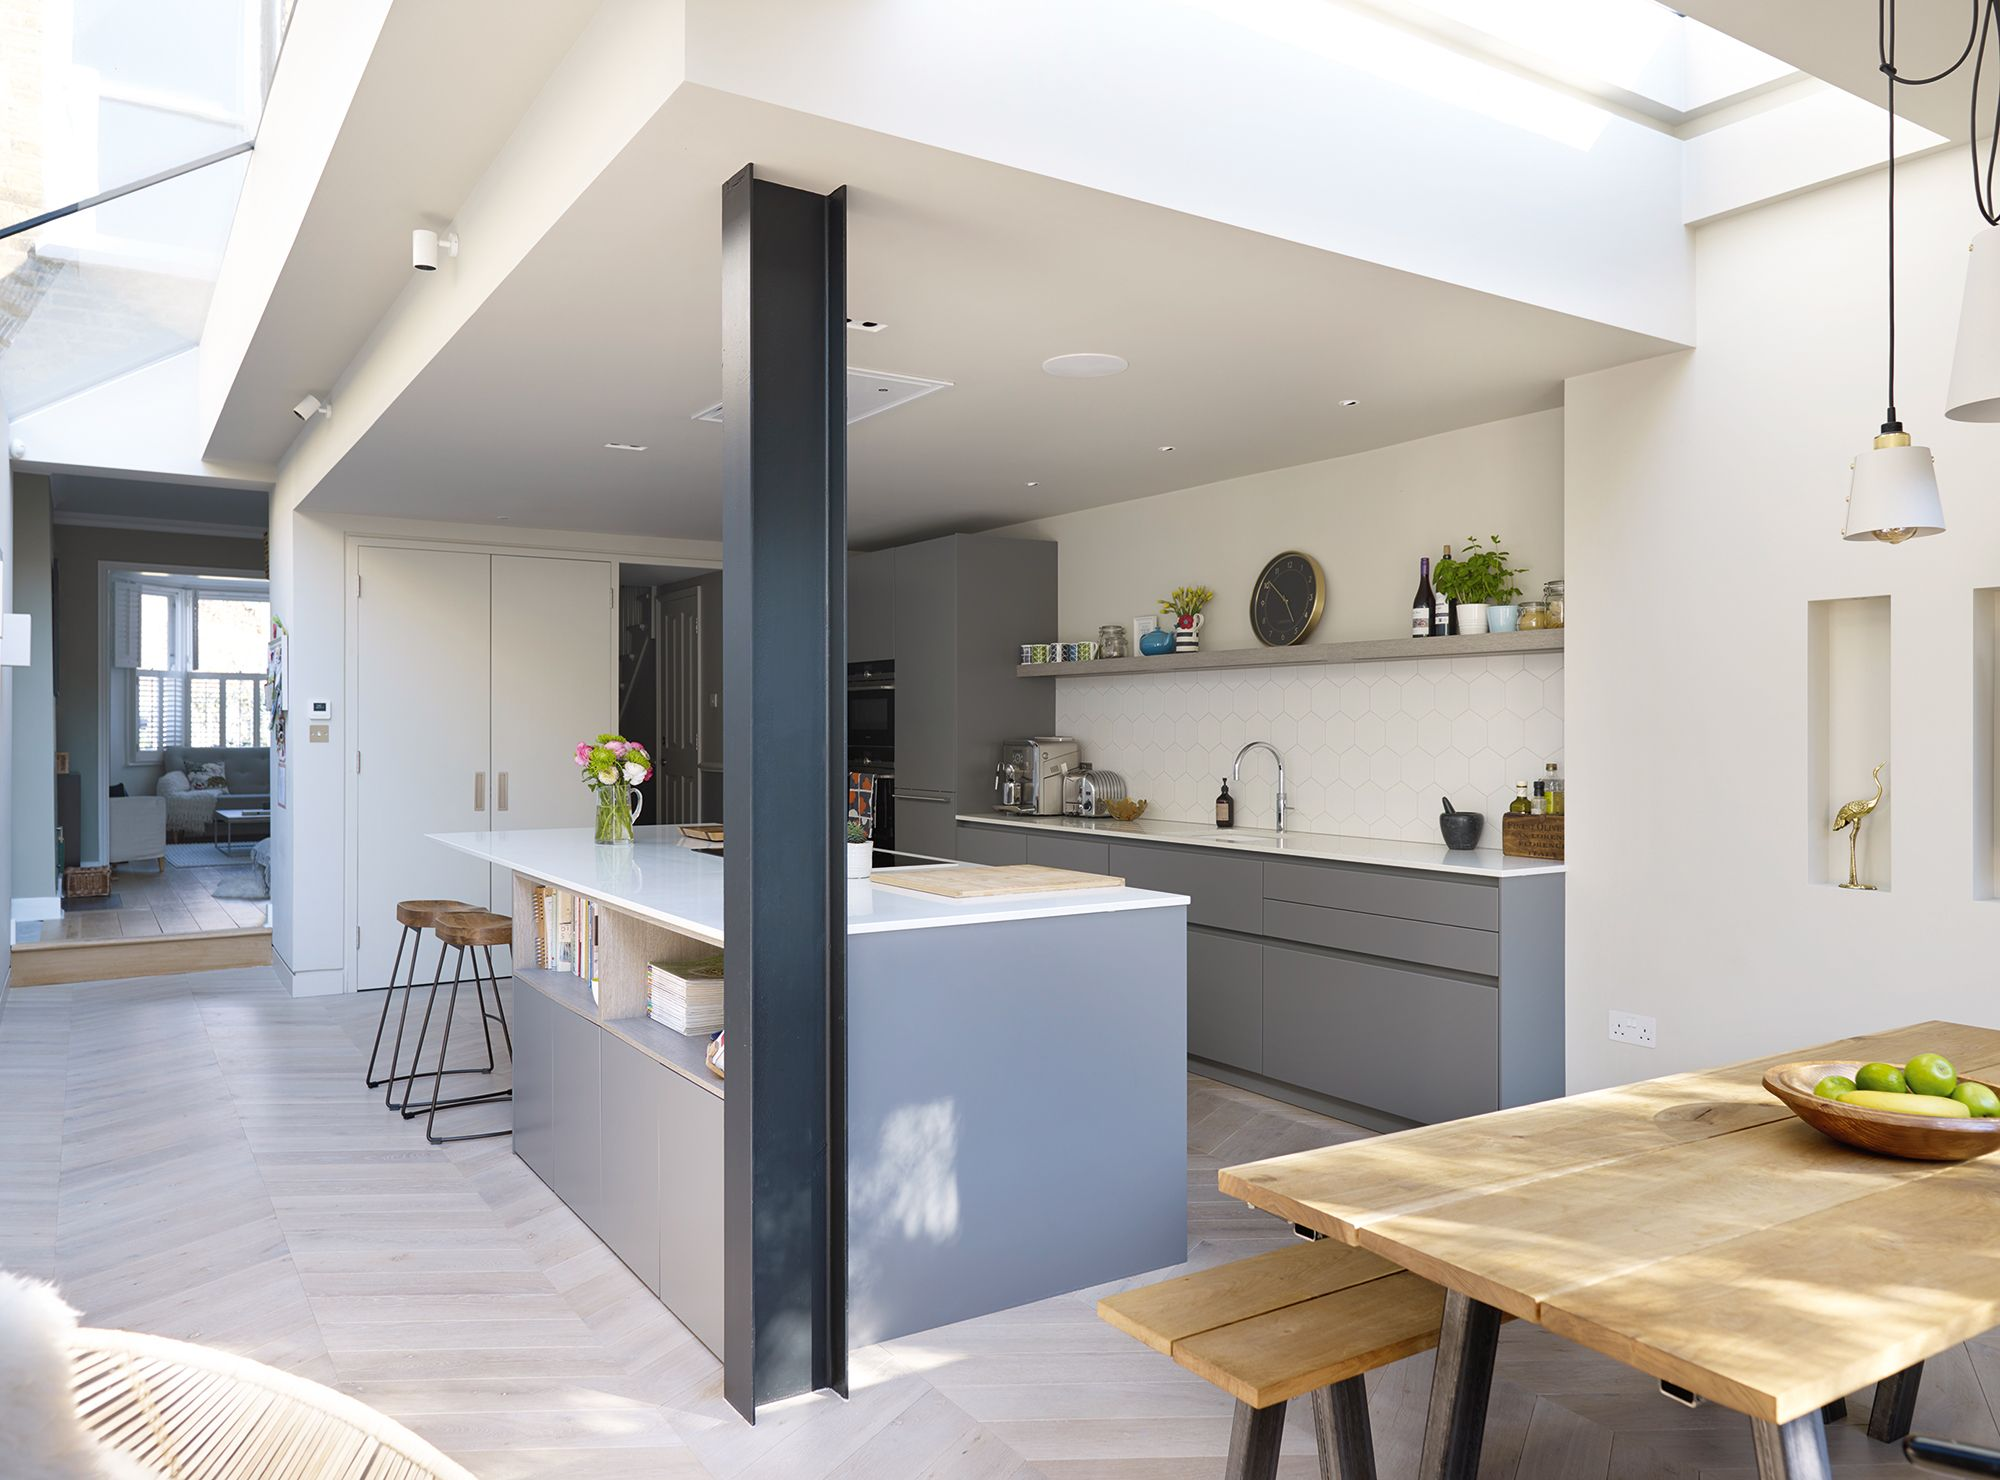 Contemporary Renovation & Extension to a Victorian Terrace